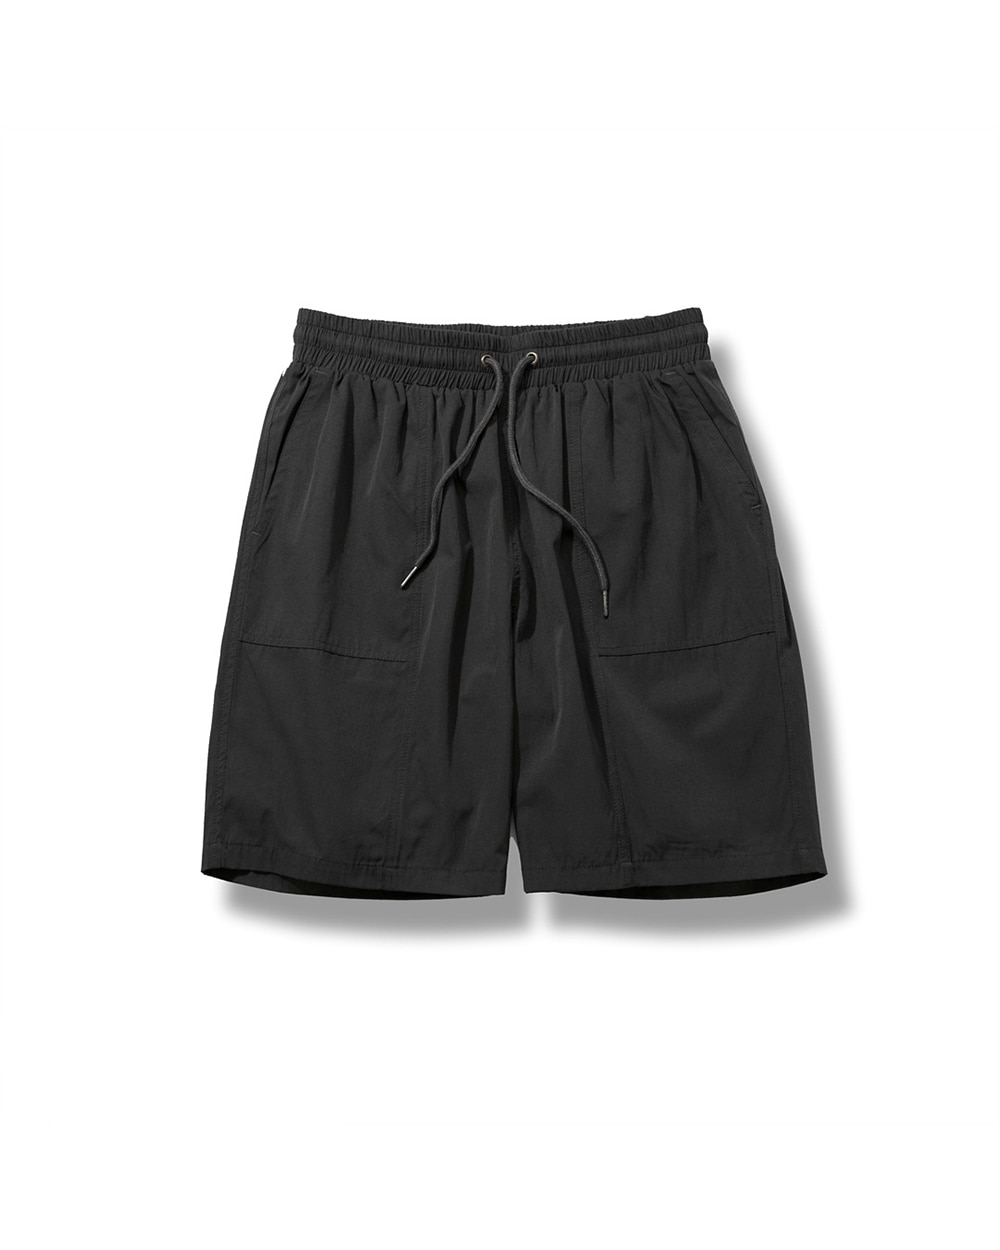 C/P FATIGUE HALF PANTS CHARCOAL